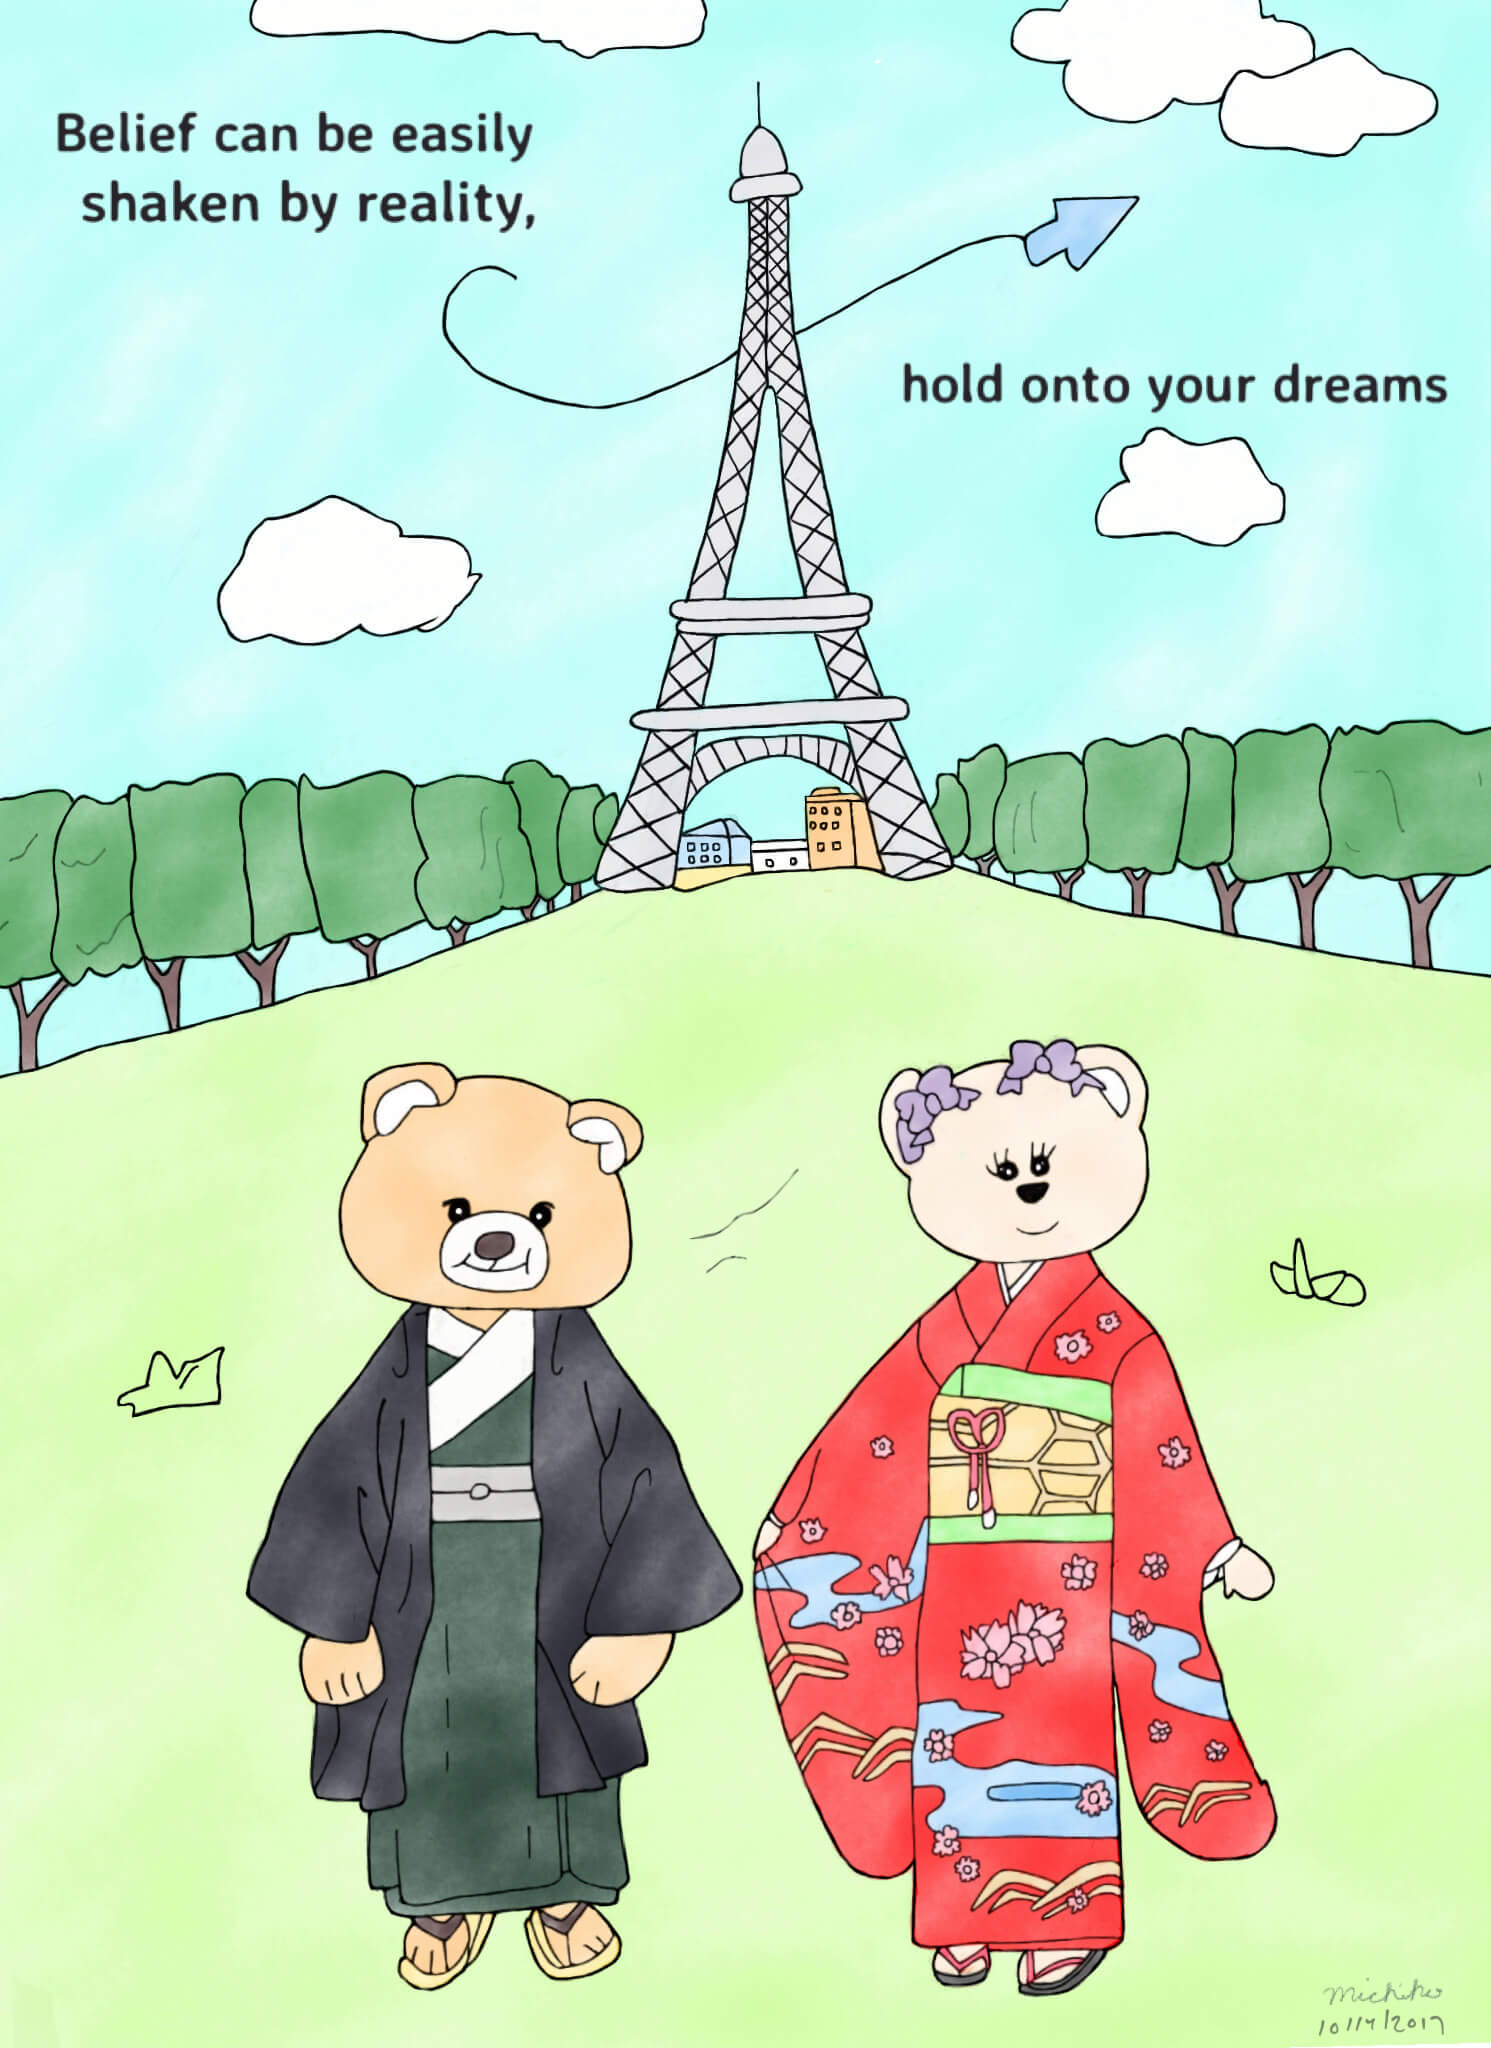 Hold onto your dreams (teal)